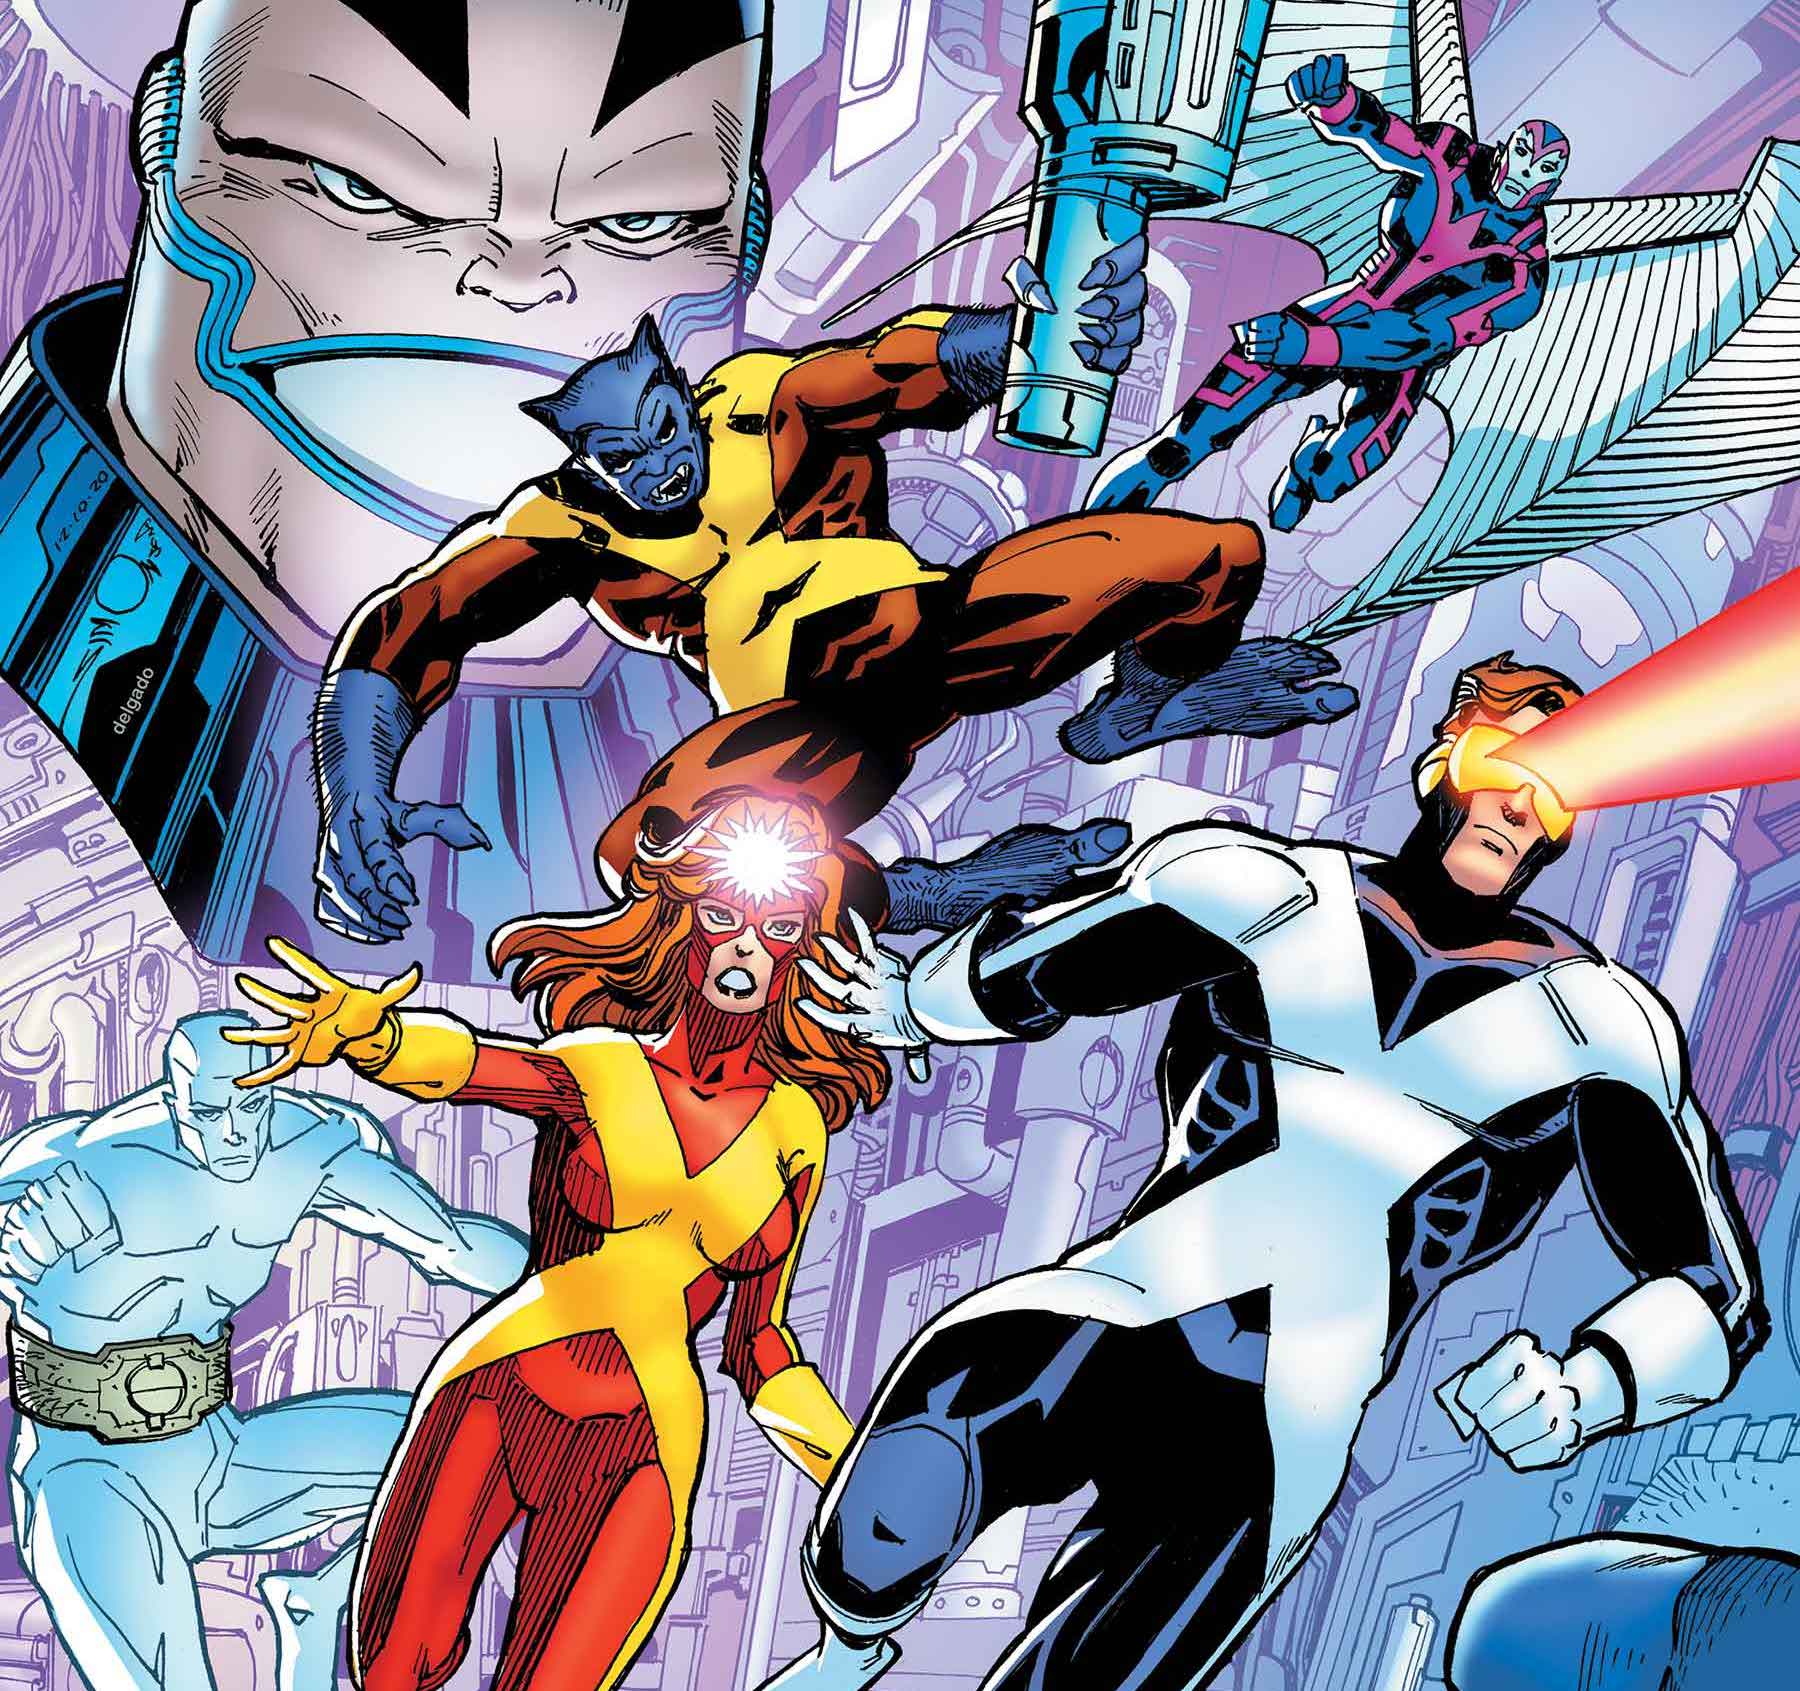 Marvel confirms Louise and Walter Simonson will continue their X-Factor run